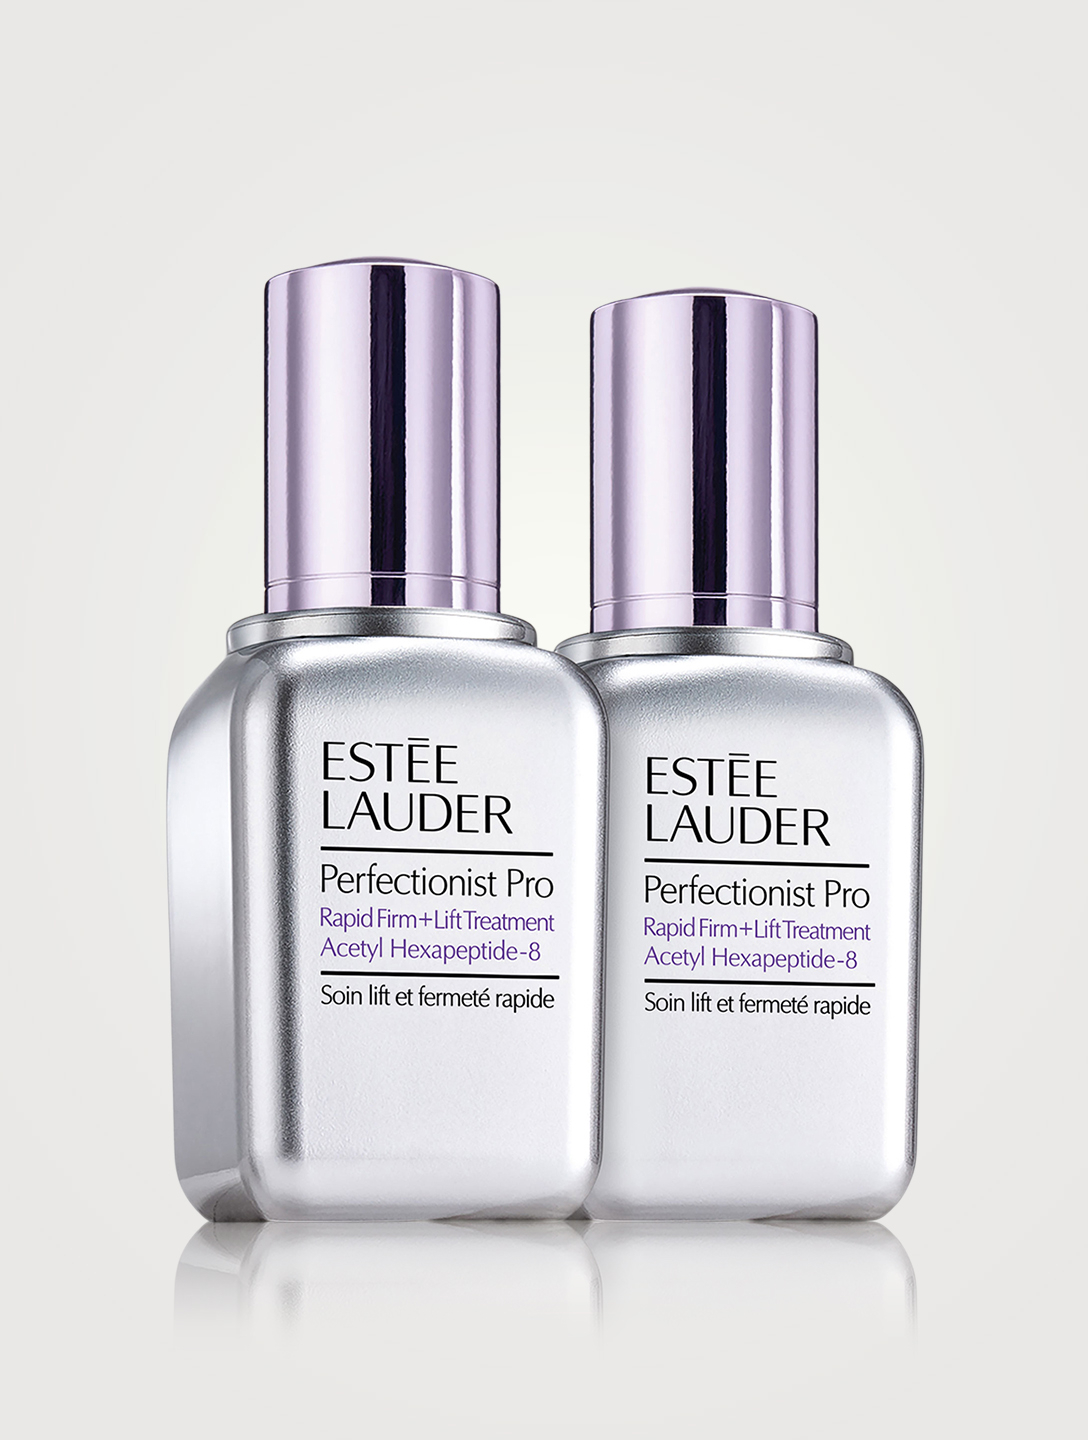 ESTÉE LAUDER Perfectionist Pro Rapid Lift + Firm Treatment with Acetyl Hexapeptide-8 Duo Beauty